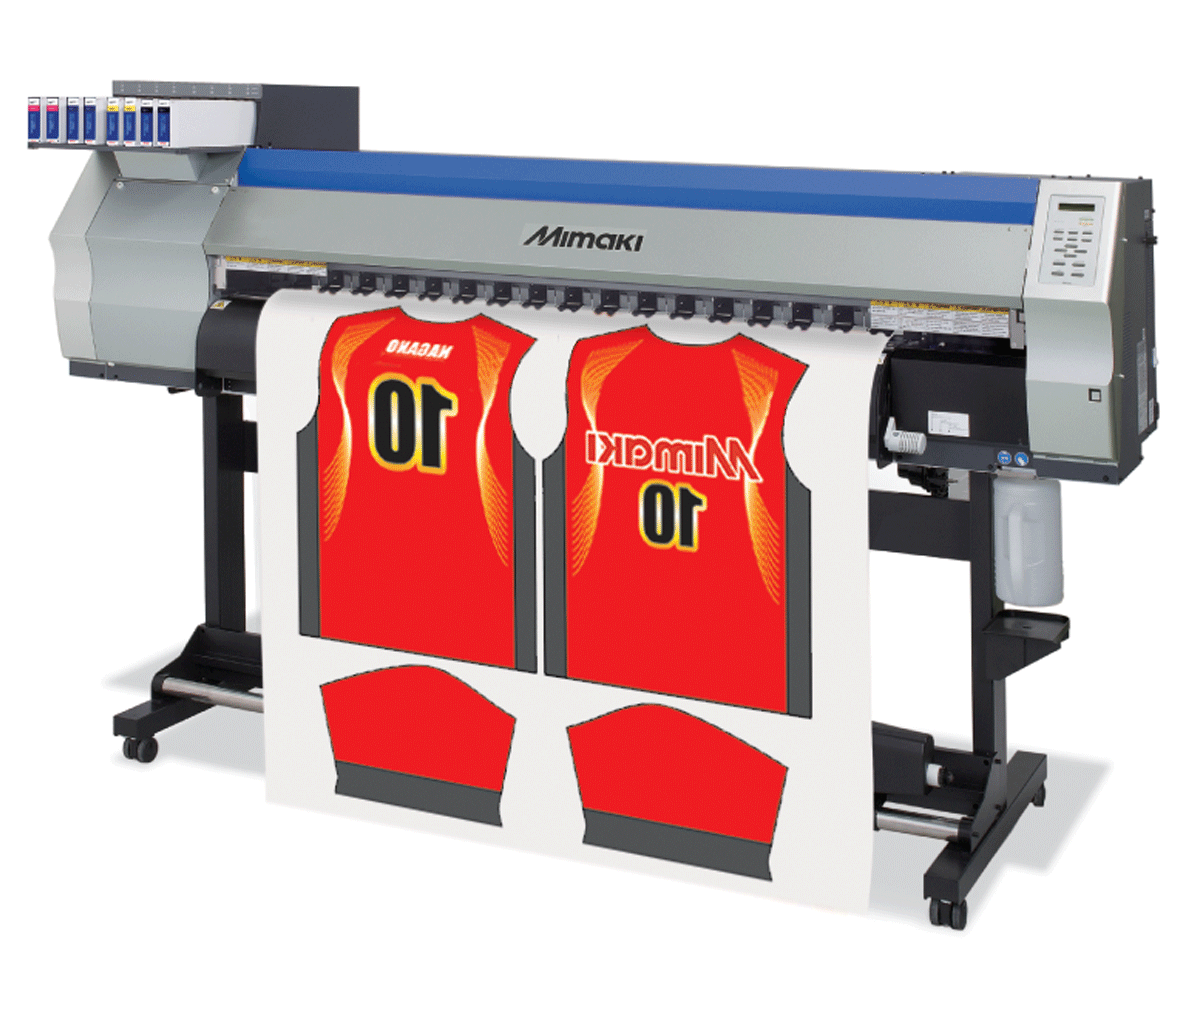 TS3-1600 High Speed, Continuous Dye Sublimation Printer